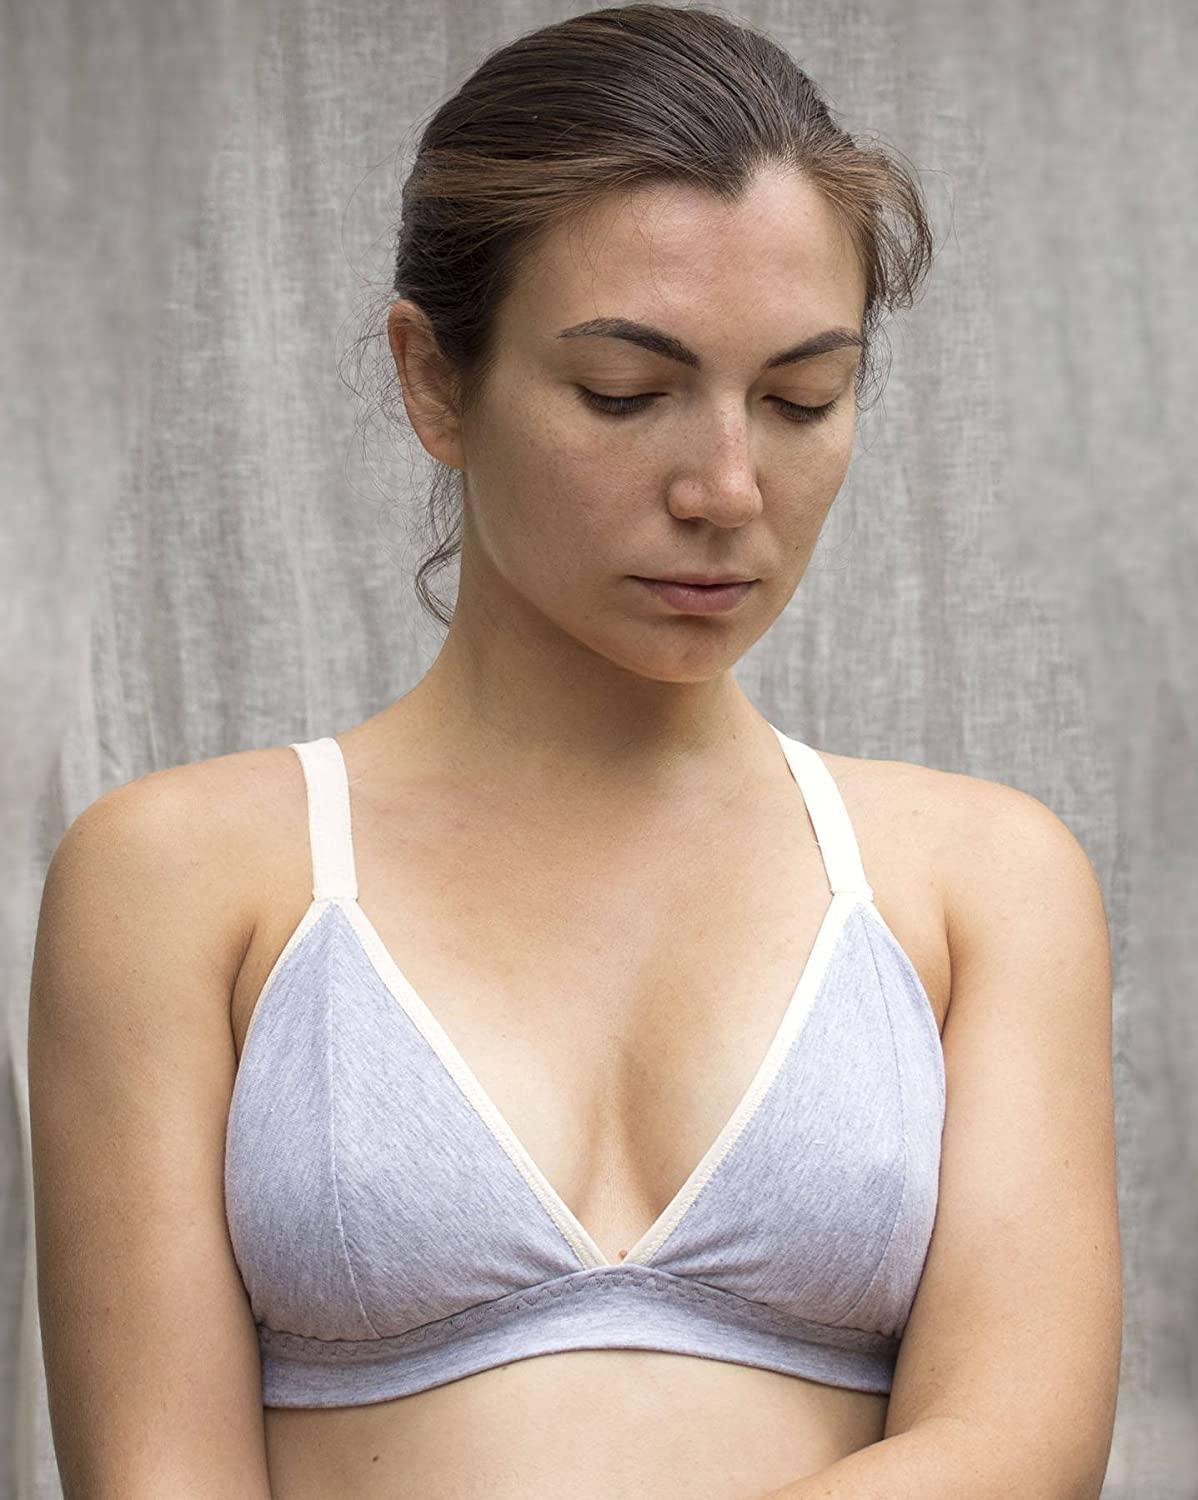 Organic Cotton Gray Bralette. Soft Wireless Bra. Comfortable Supportive Bralette. Convertible Straps. Natural Handmade Lingerie